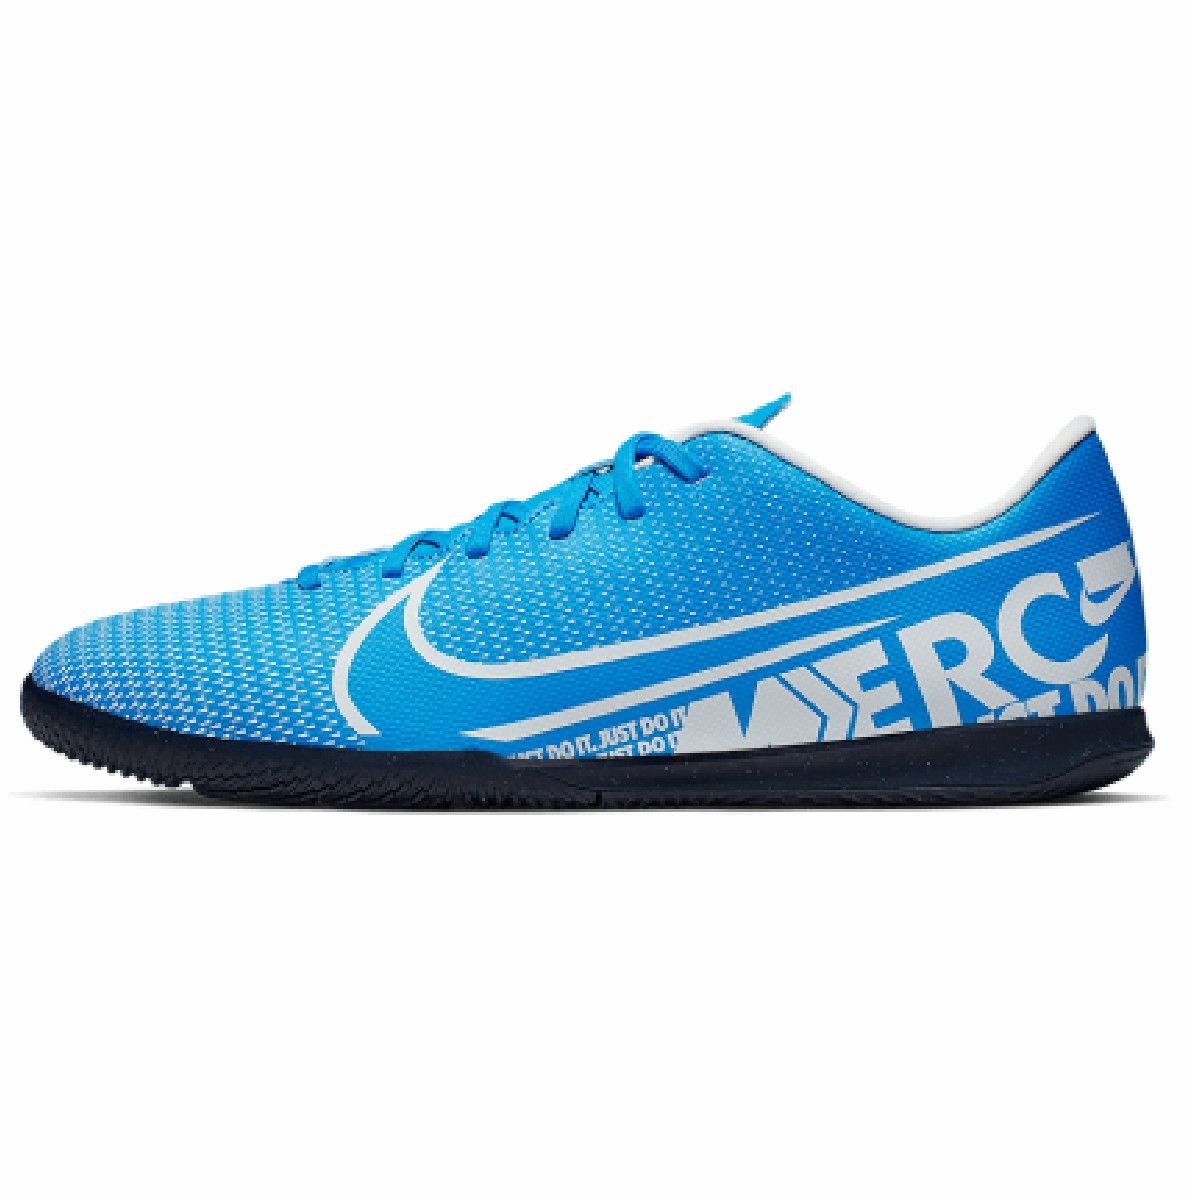 Tenis Nike Mercurial Vapor 13 Club IC Chuteira Futsal AT7997-414